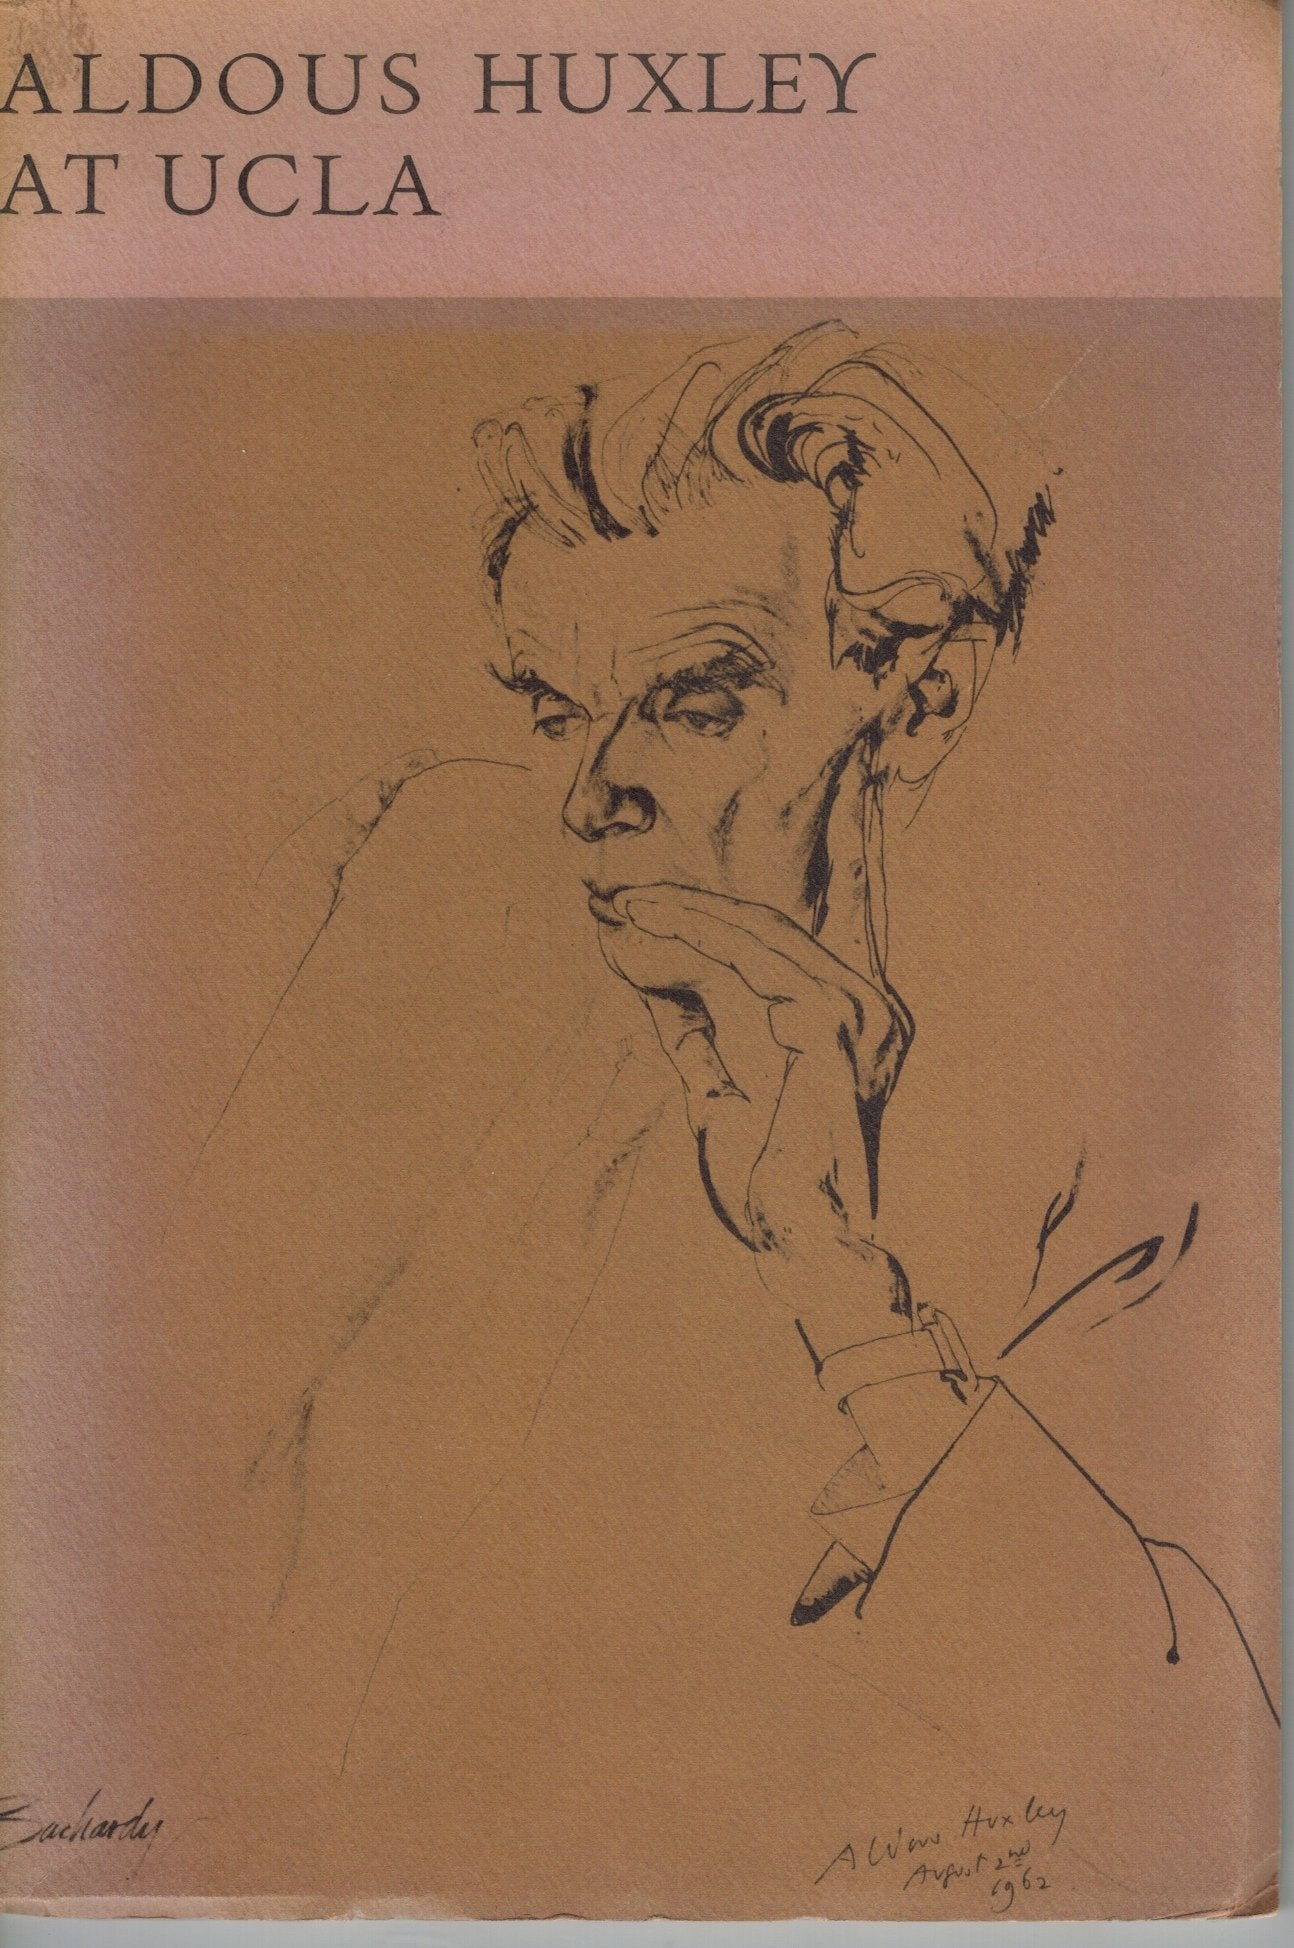 ALDOUS HUXLEY AT UCLA A Catalogue of the Manuscripts in the Aldous Huxley  Collection with the Texts of Three Unpublished Letters  by Huxley, Aldous and George Wickes